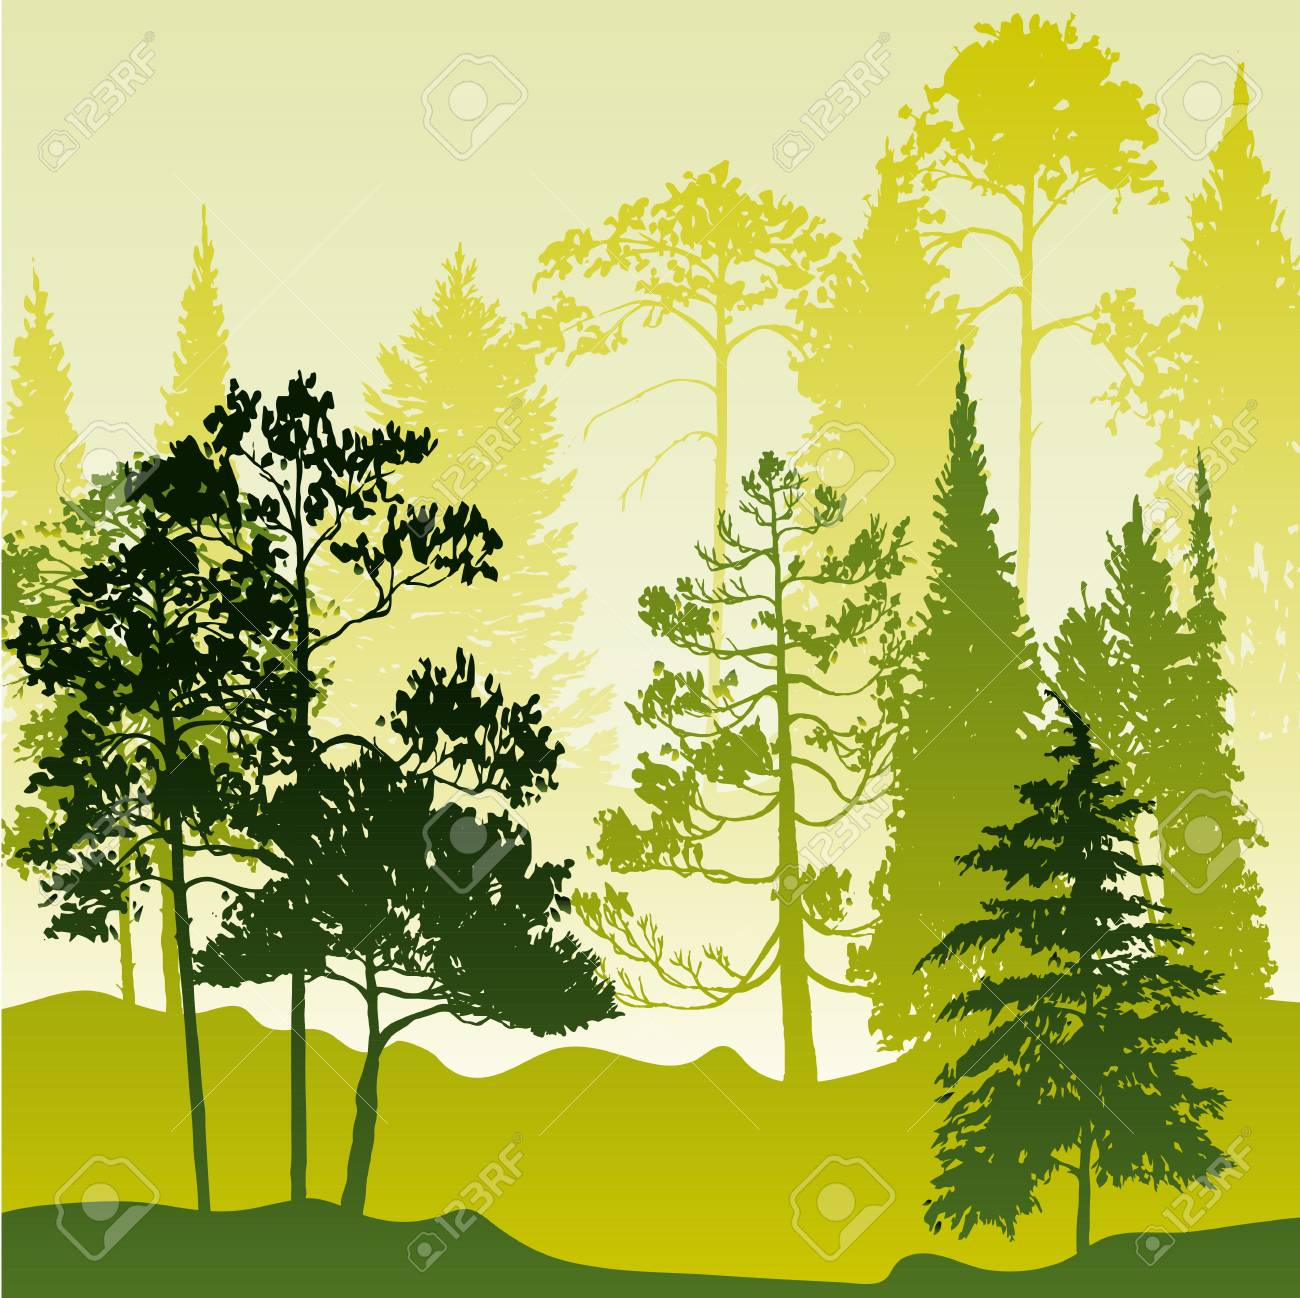 vector landscape with pine and fir trees abstract nature background